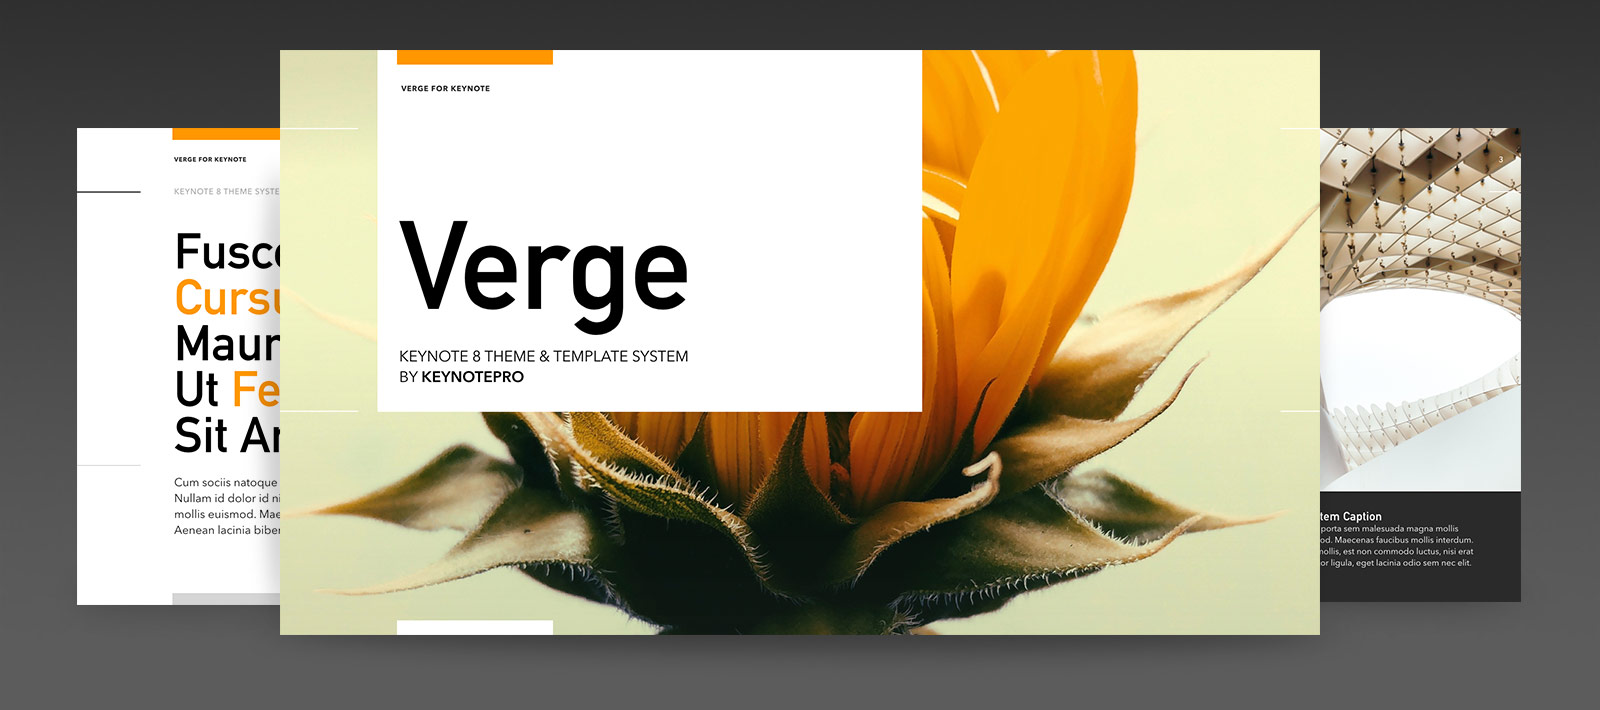 Verge (NXT) for Keynote 8